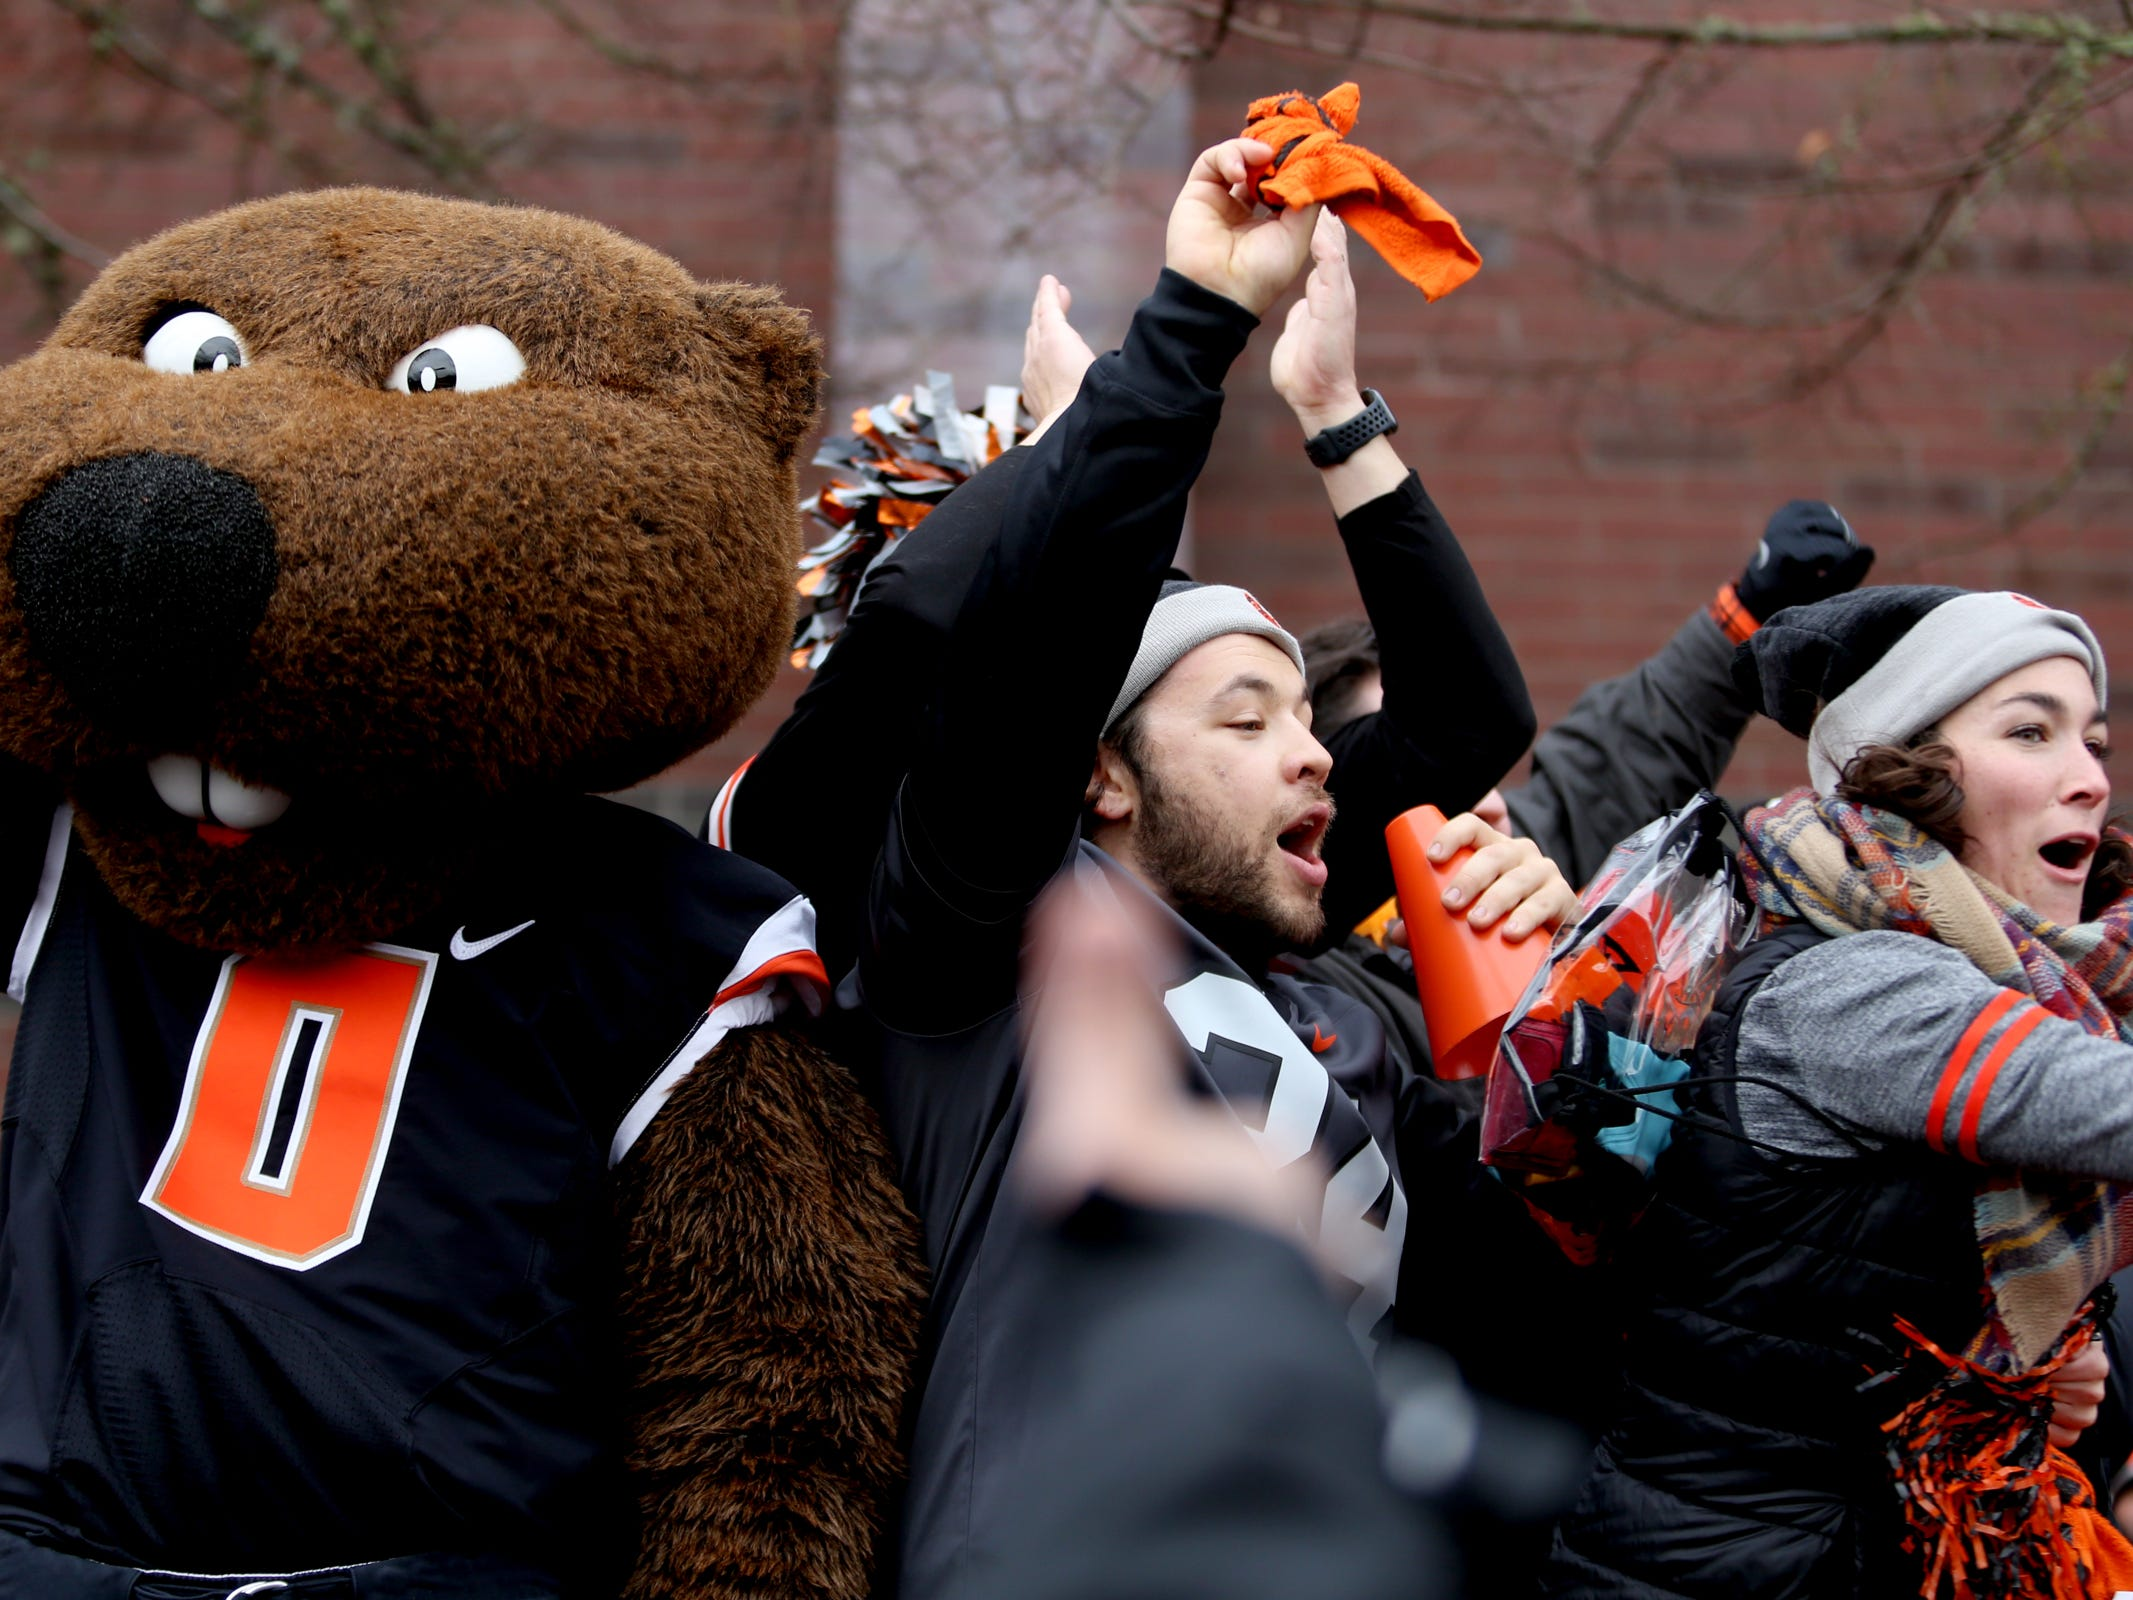 Benny Beaver and Oregon State fans tailgate before the start of the Oregon vs. Oregon State Civil war football game at Oregon State University in Corvallis on Friday, Nov. 23, 2018.